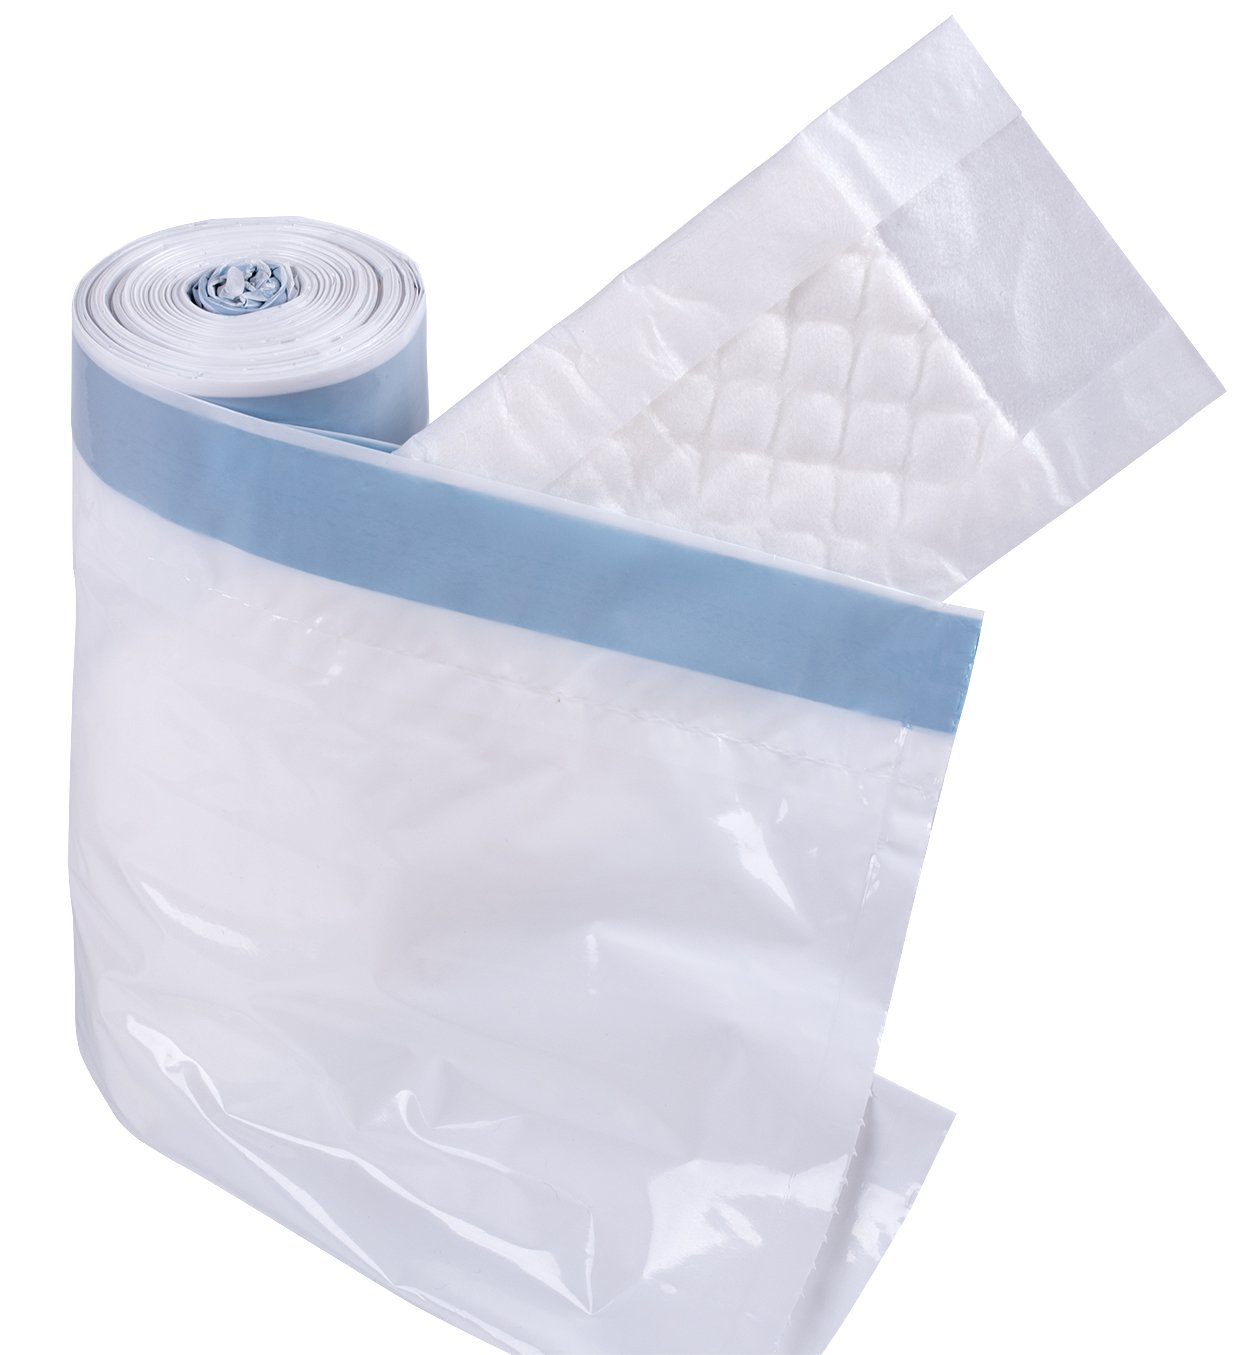 Commode Liners with Super Absorbent Pads, Disposable Commode Liners Pail Bags for Adult Commode Chair Bucket or Bedside Toilet Liners,Universal fit (Pack of 30)